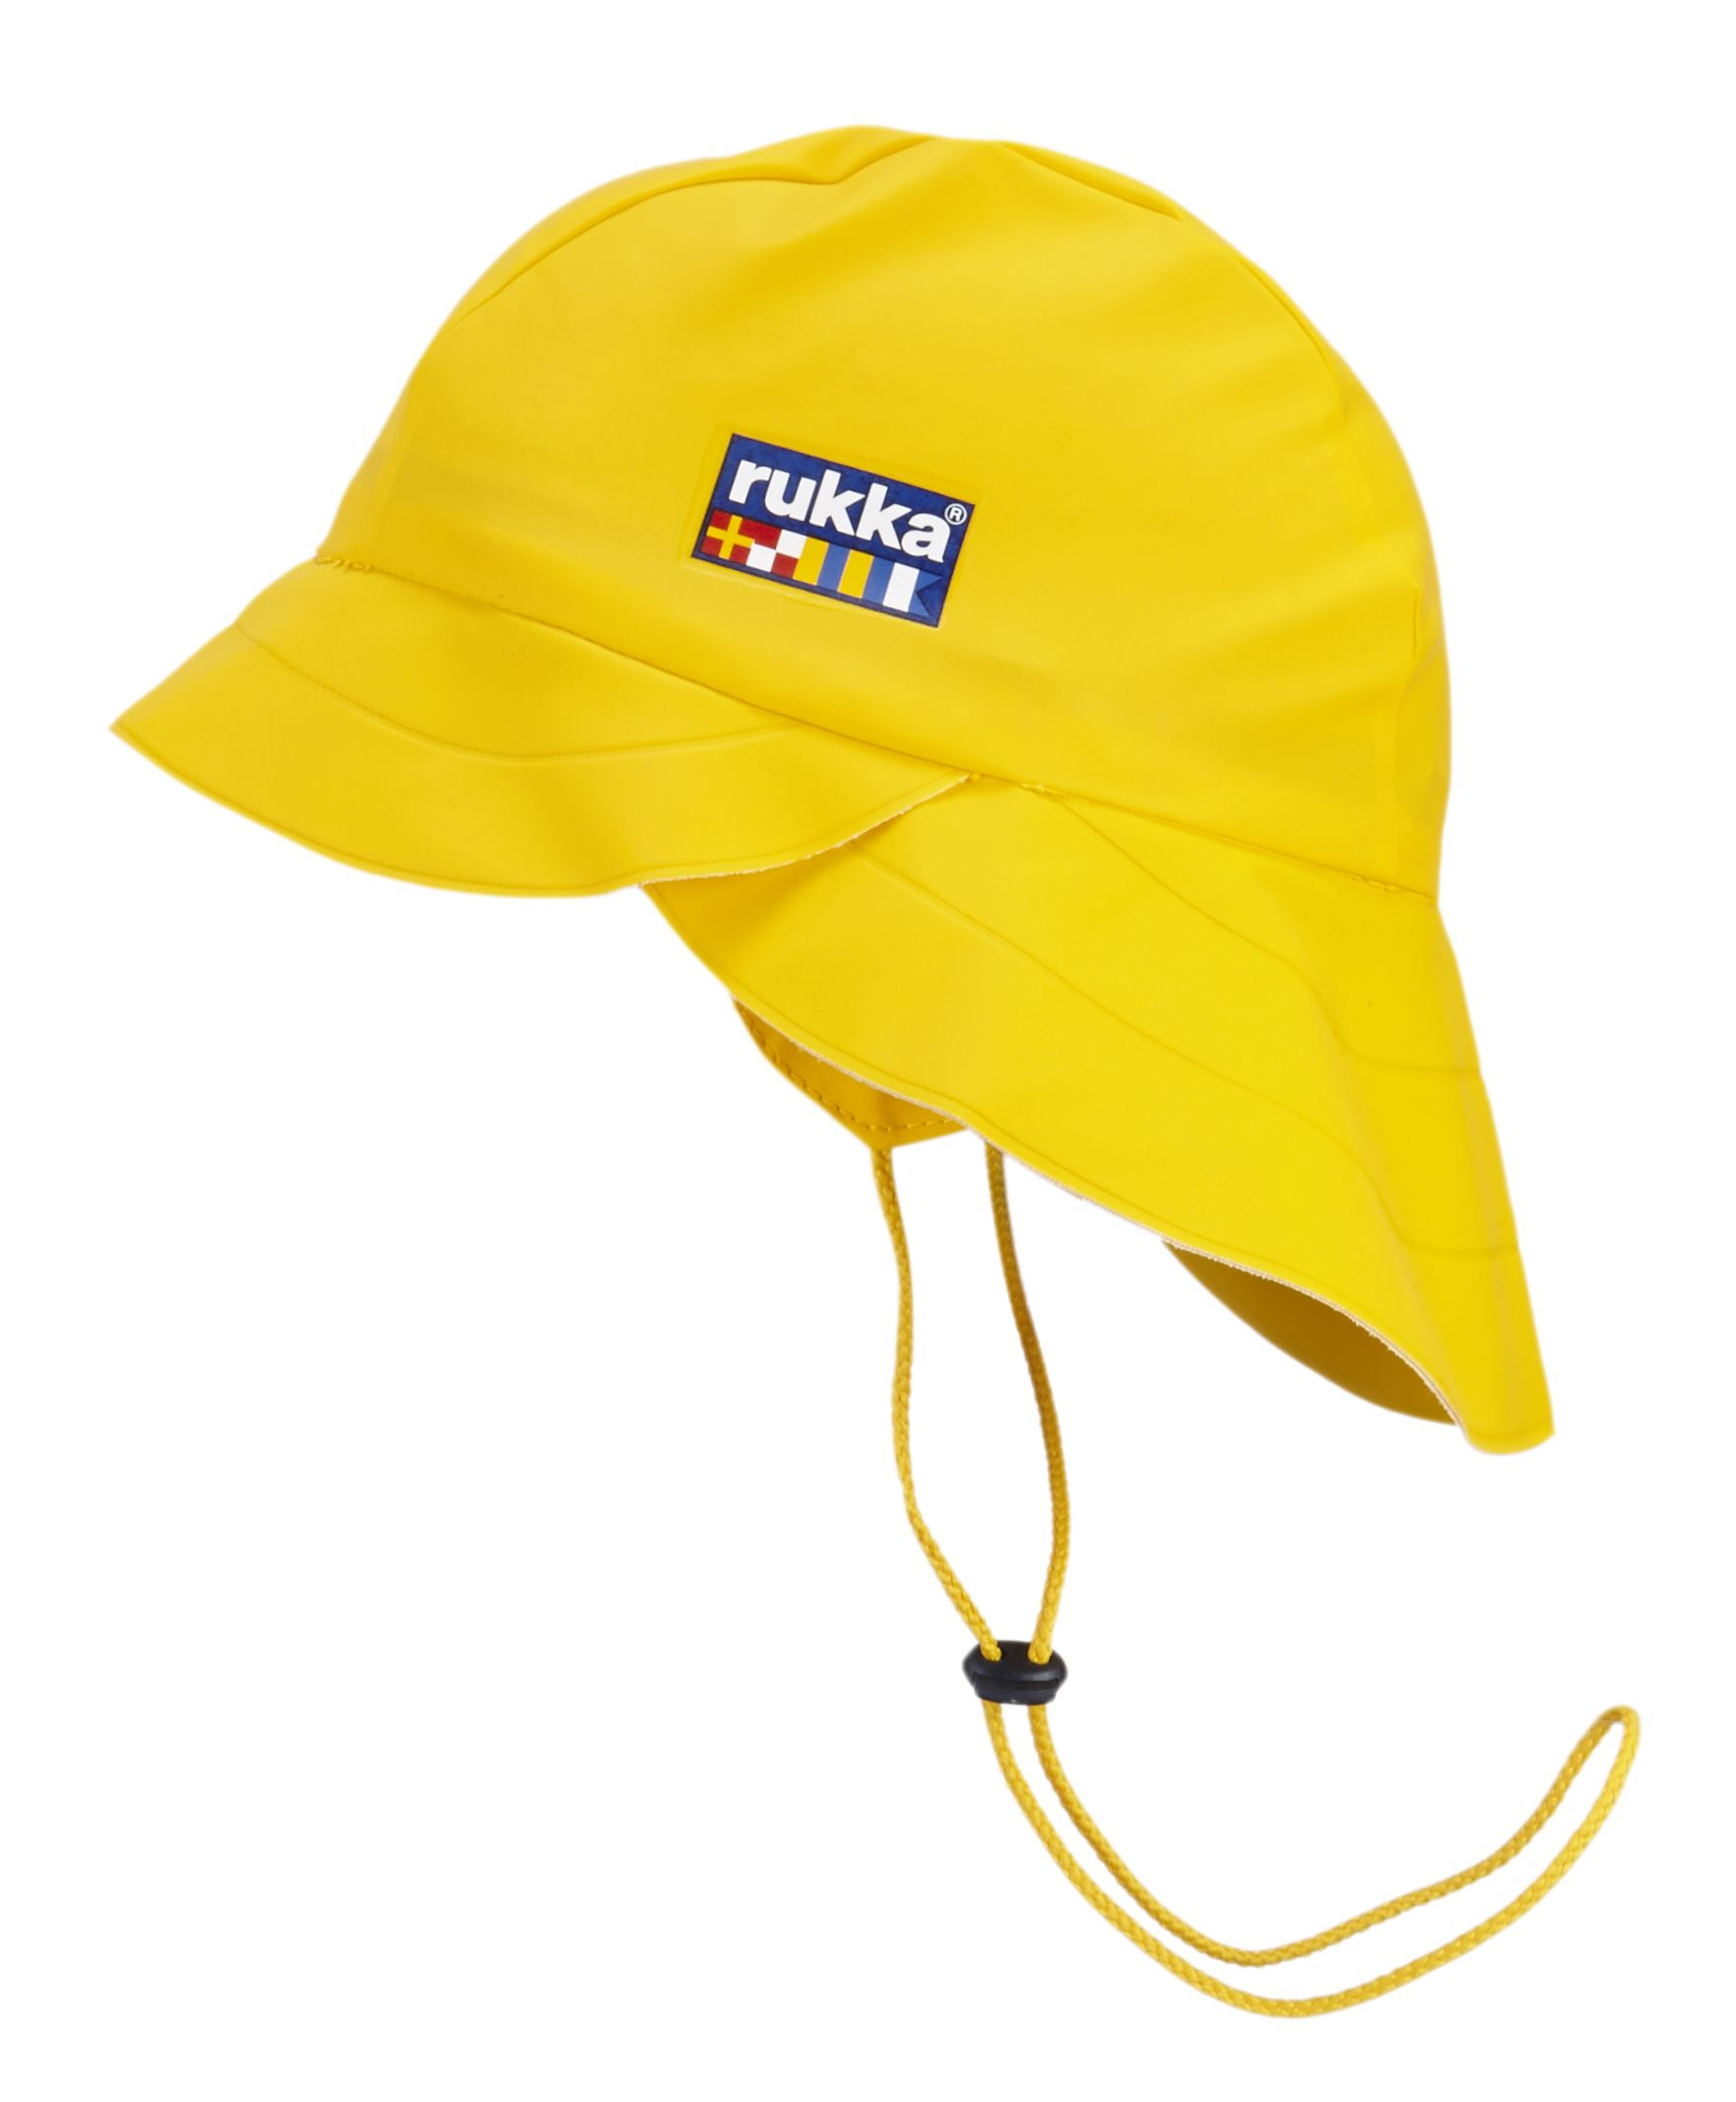 Rukka kids waterproof souwester rain hat Yellow Finland ... 5135c156983